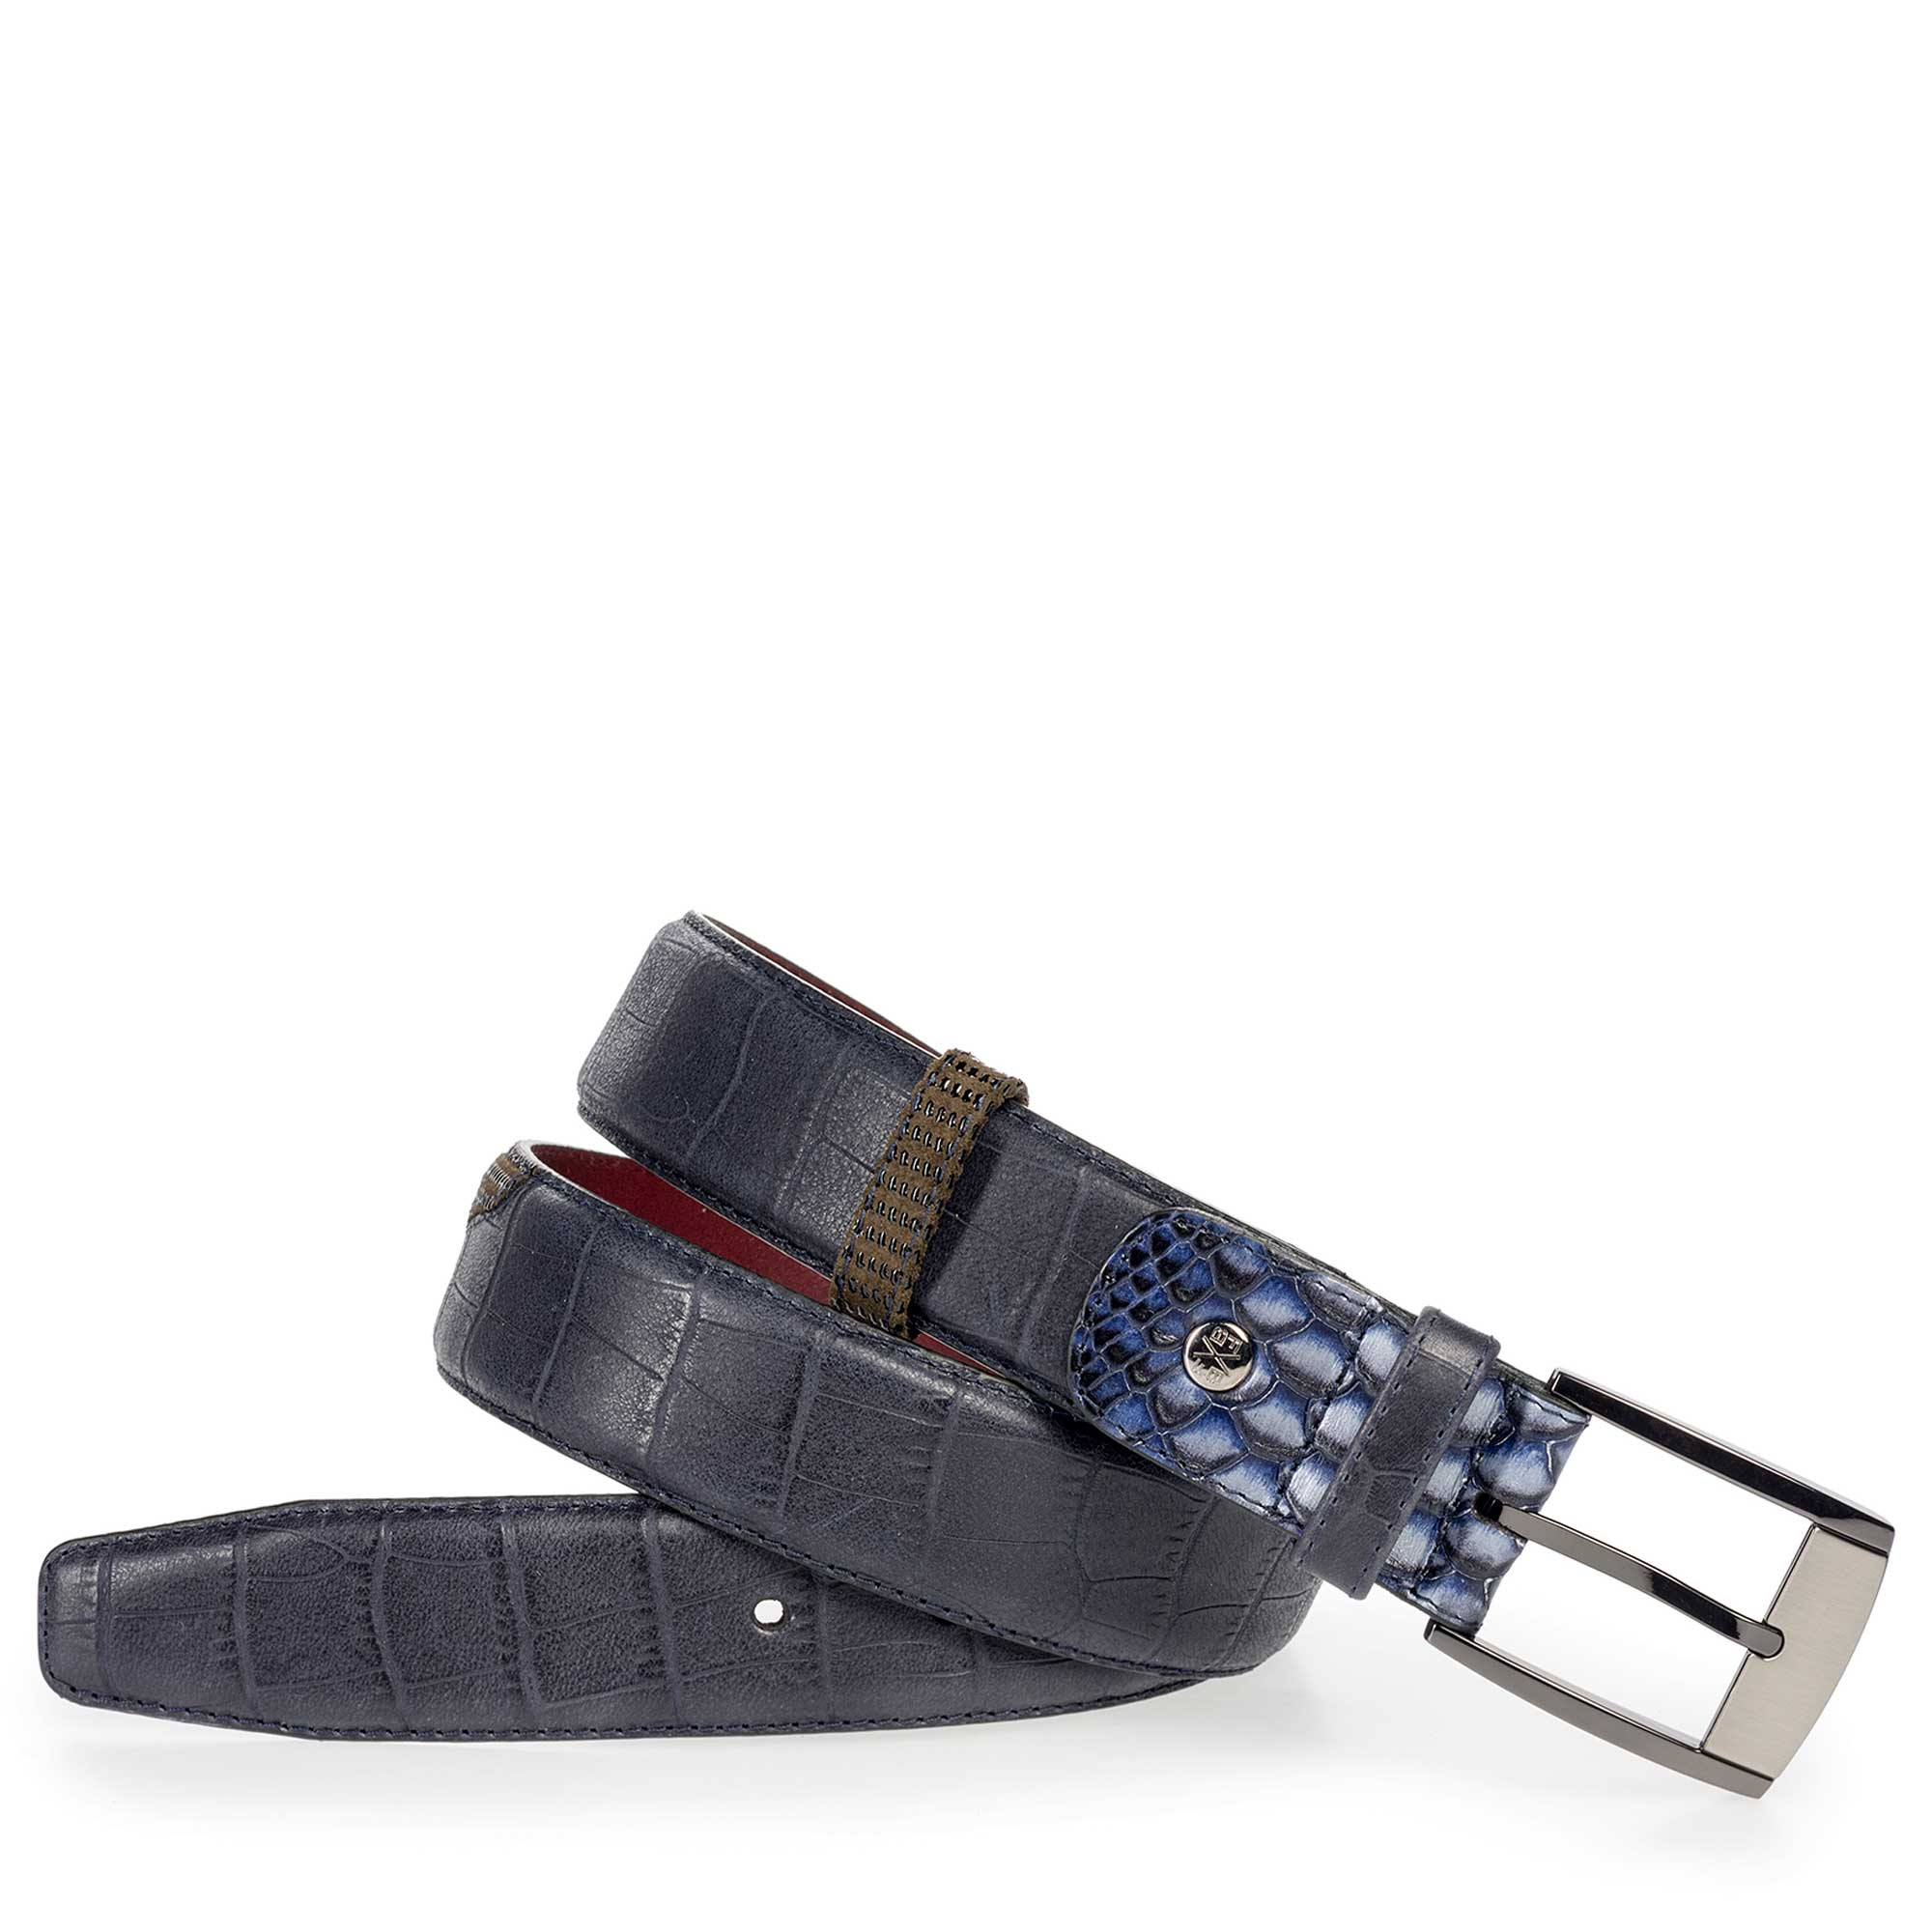 75176/07 - Dark blue calf's leather belt with croco print